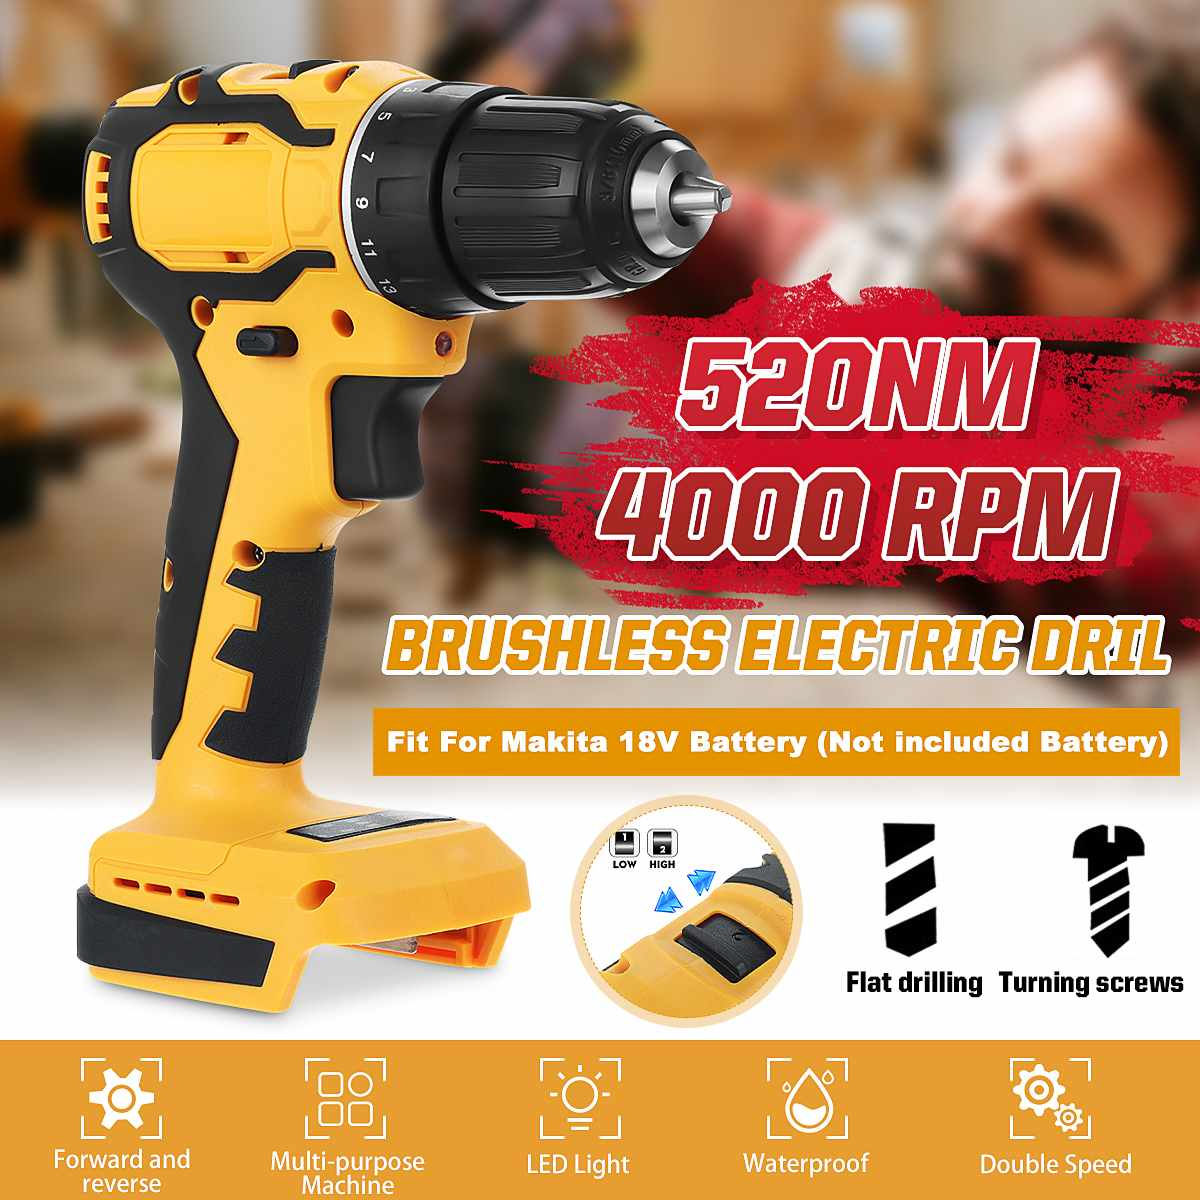 10mm Chuck Brushless Impact Drill 350N.m Cordless Electric Drill For Makita 18V Battery 4000RPM LED Light Power Drills